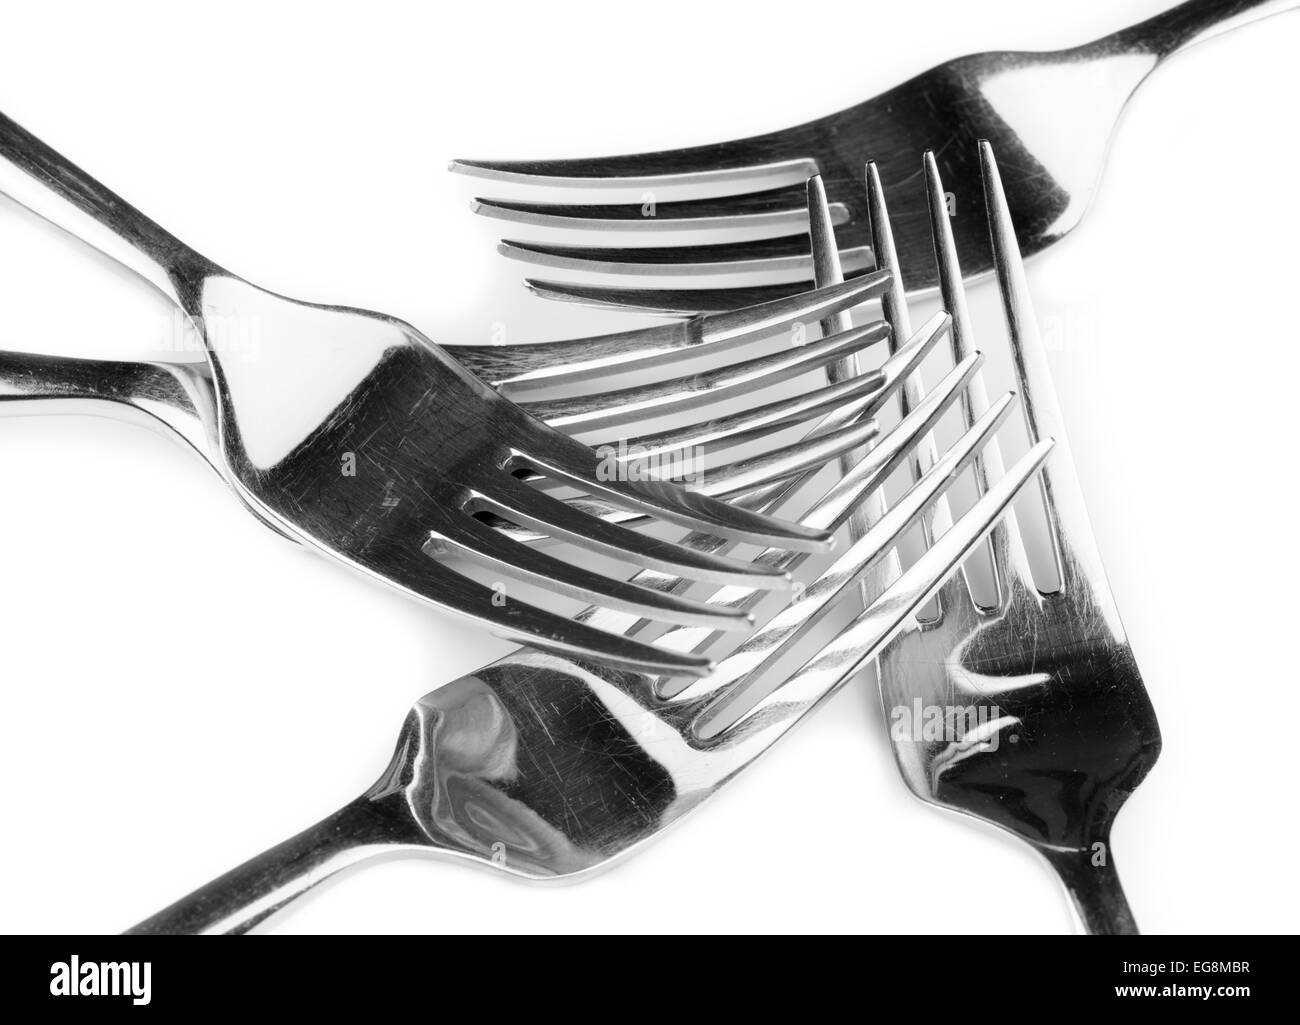 Several stainless steel forks on a white background. - Stock Image